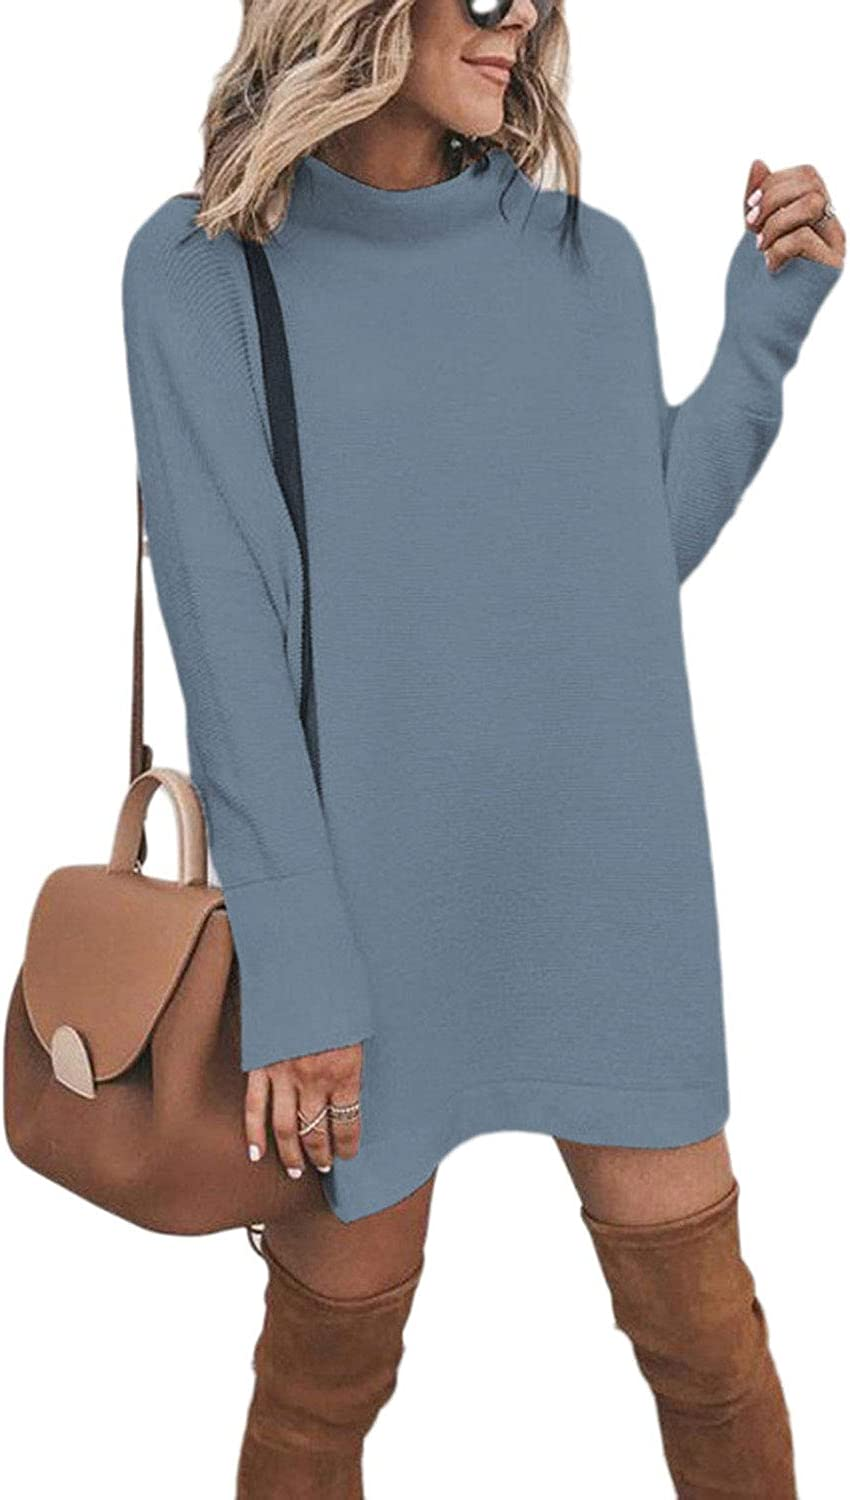 Meenew Women's High Neck Casual Loose Long Knit Pullover Sweater Tops Blue M